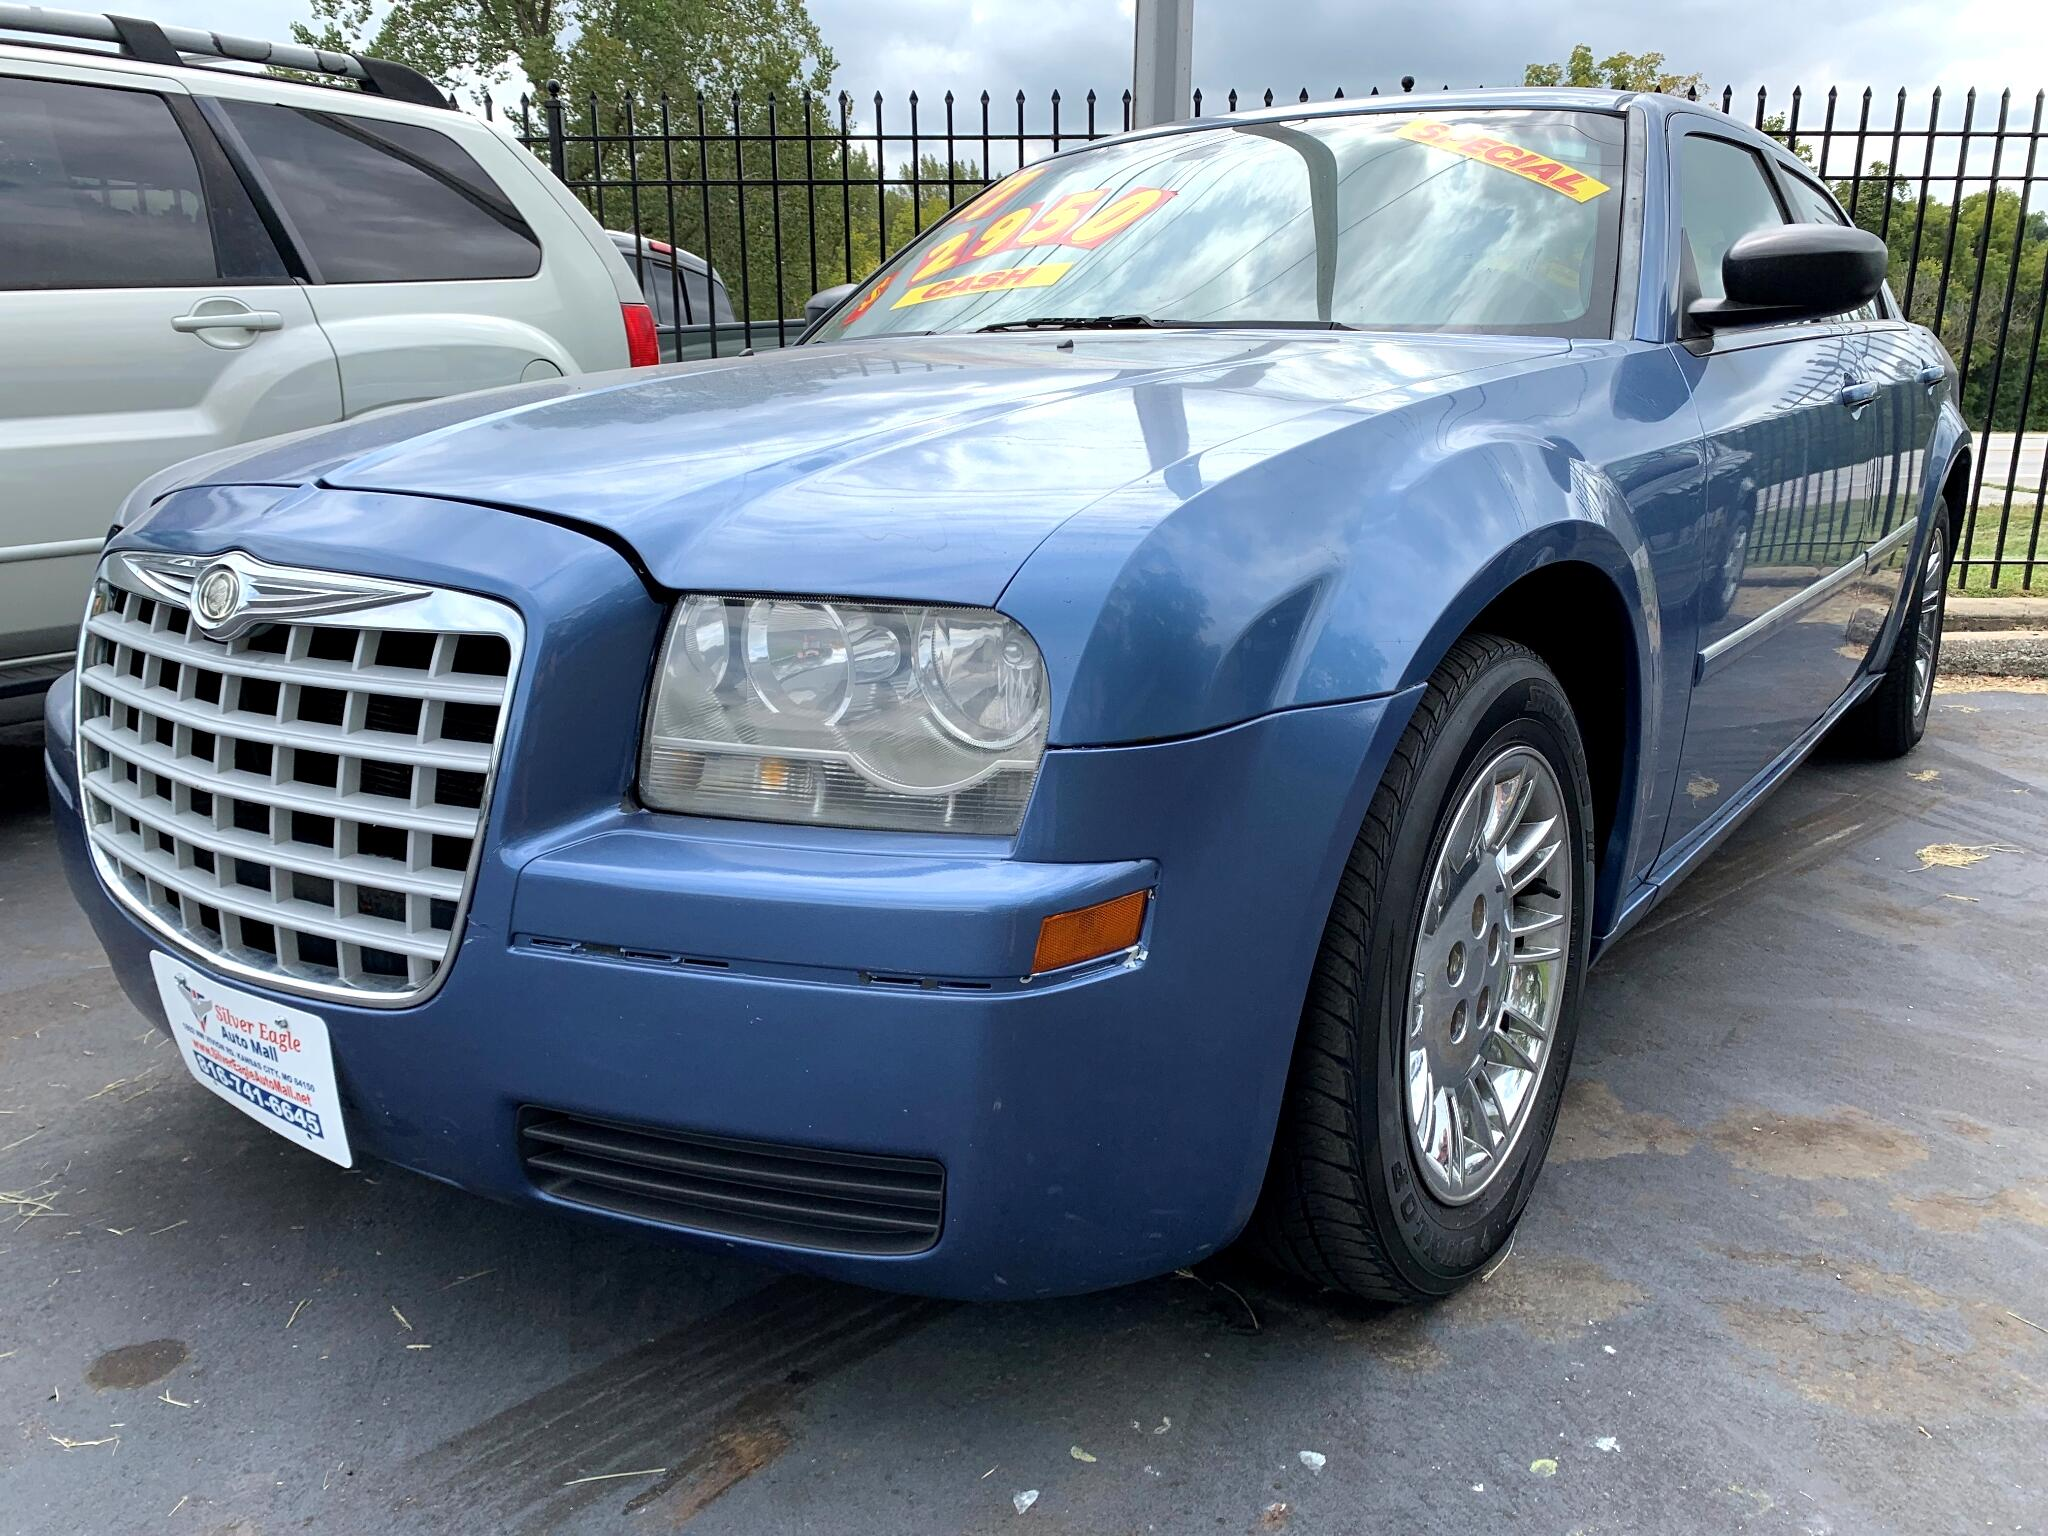 Used 2007 Chrysler 300 For Sale In Kansas City Mo 64150 Silver Eagle Auto Mall